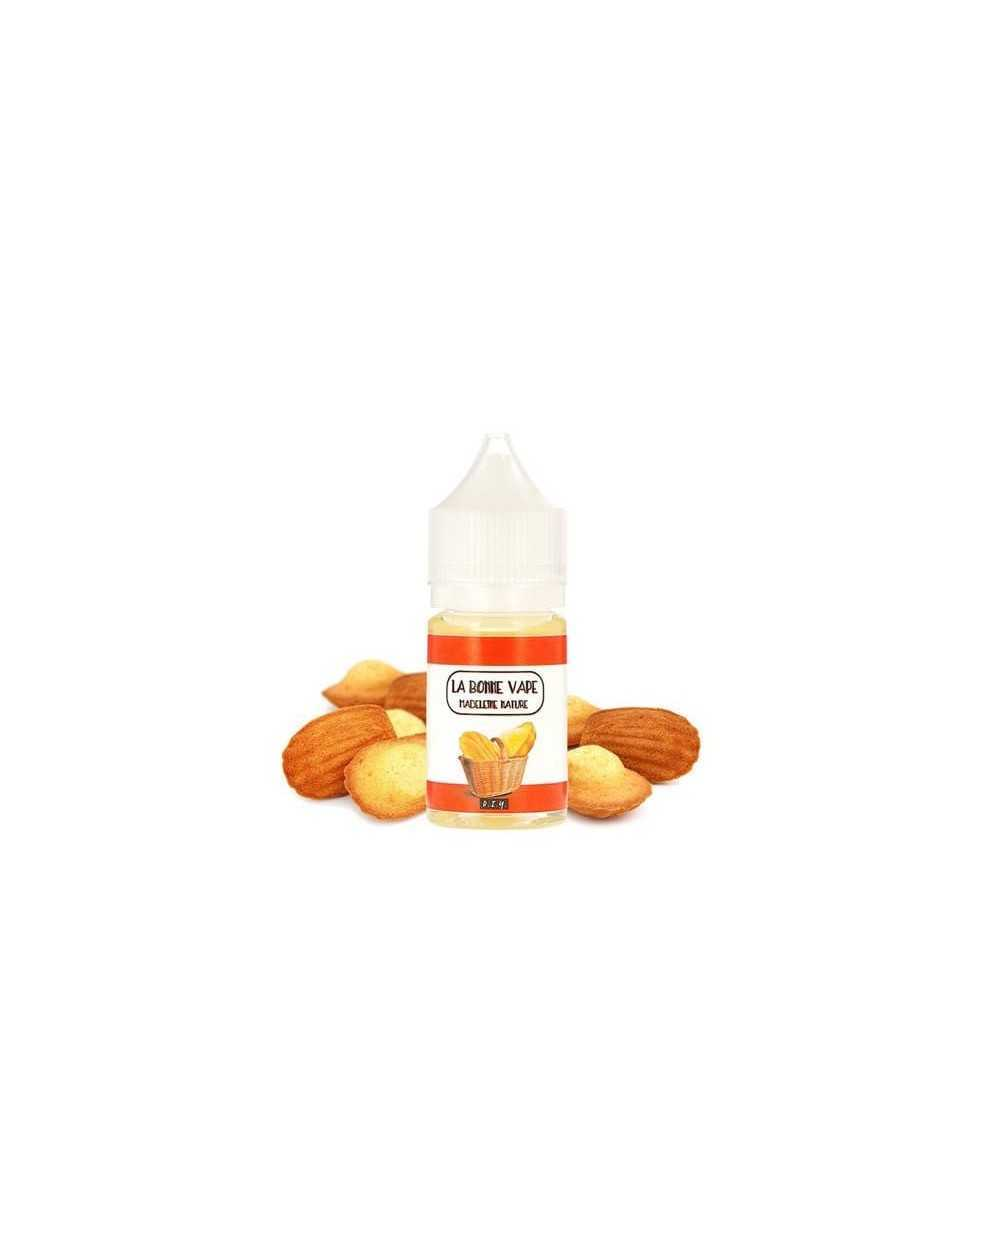 Concentrate Madeleine Nature 30ml - La Bonne Vape-1